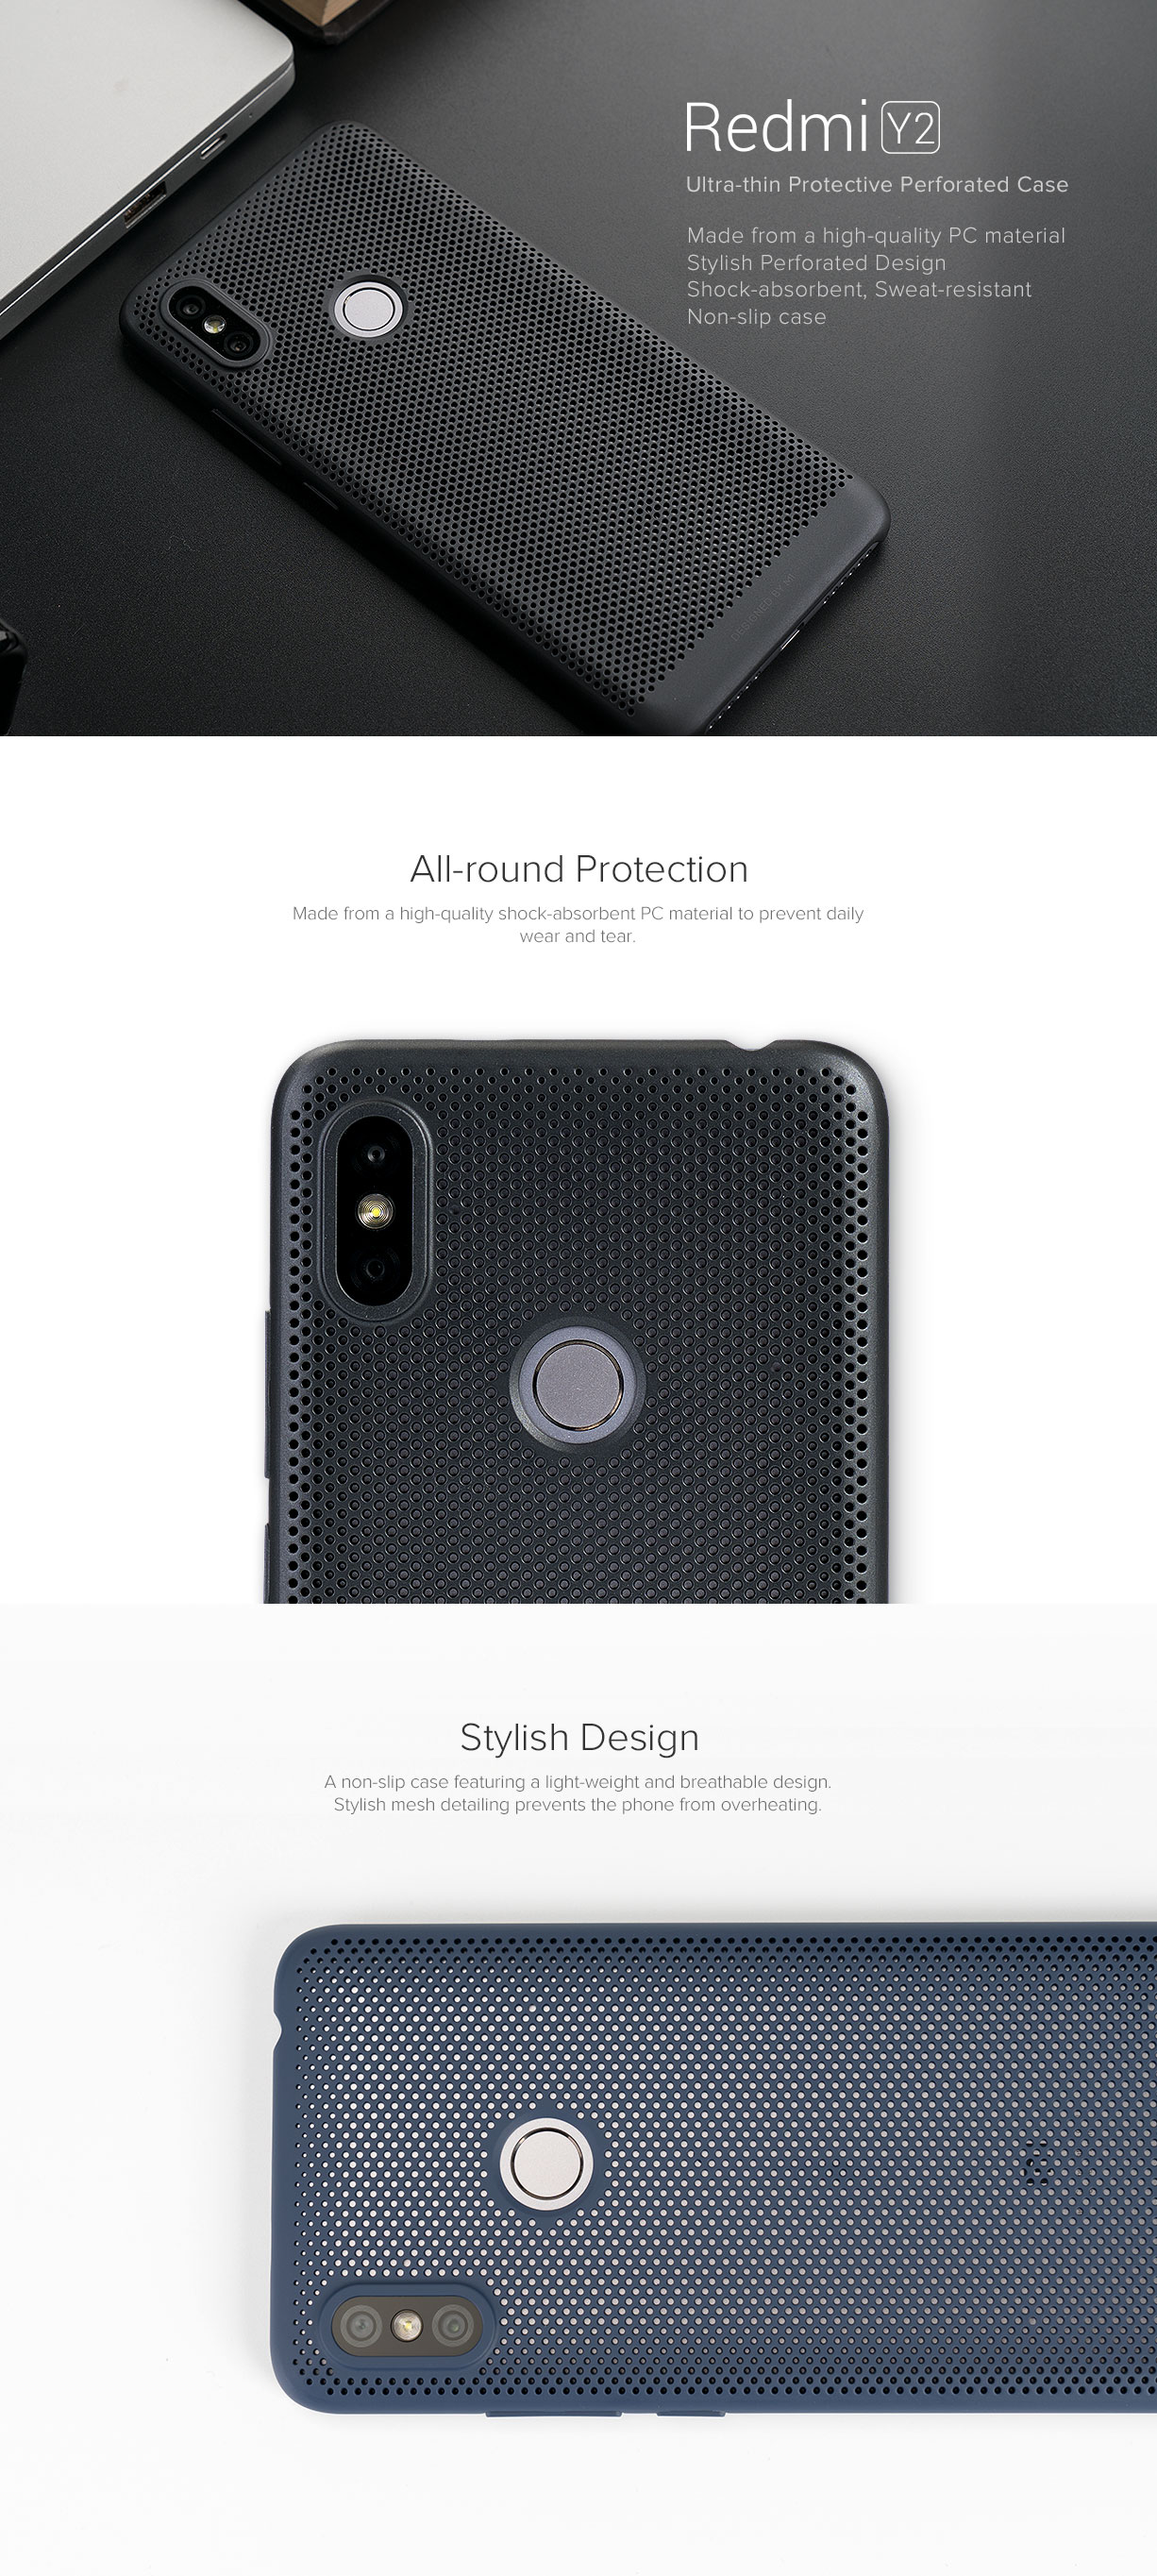 new products 989f6 18761 Redmi Y2 Perforated Case - Cases & Protectors